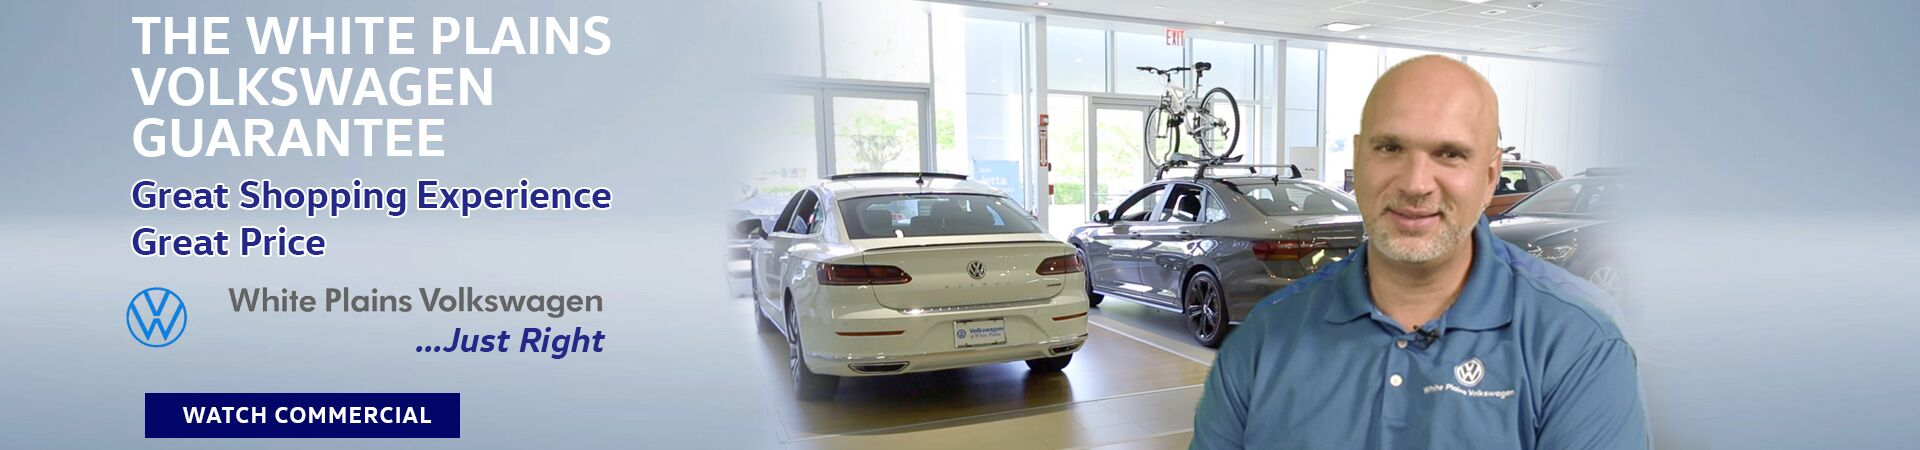 The White Plains Volkswagen Guarantee